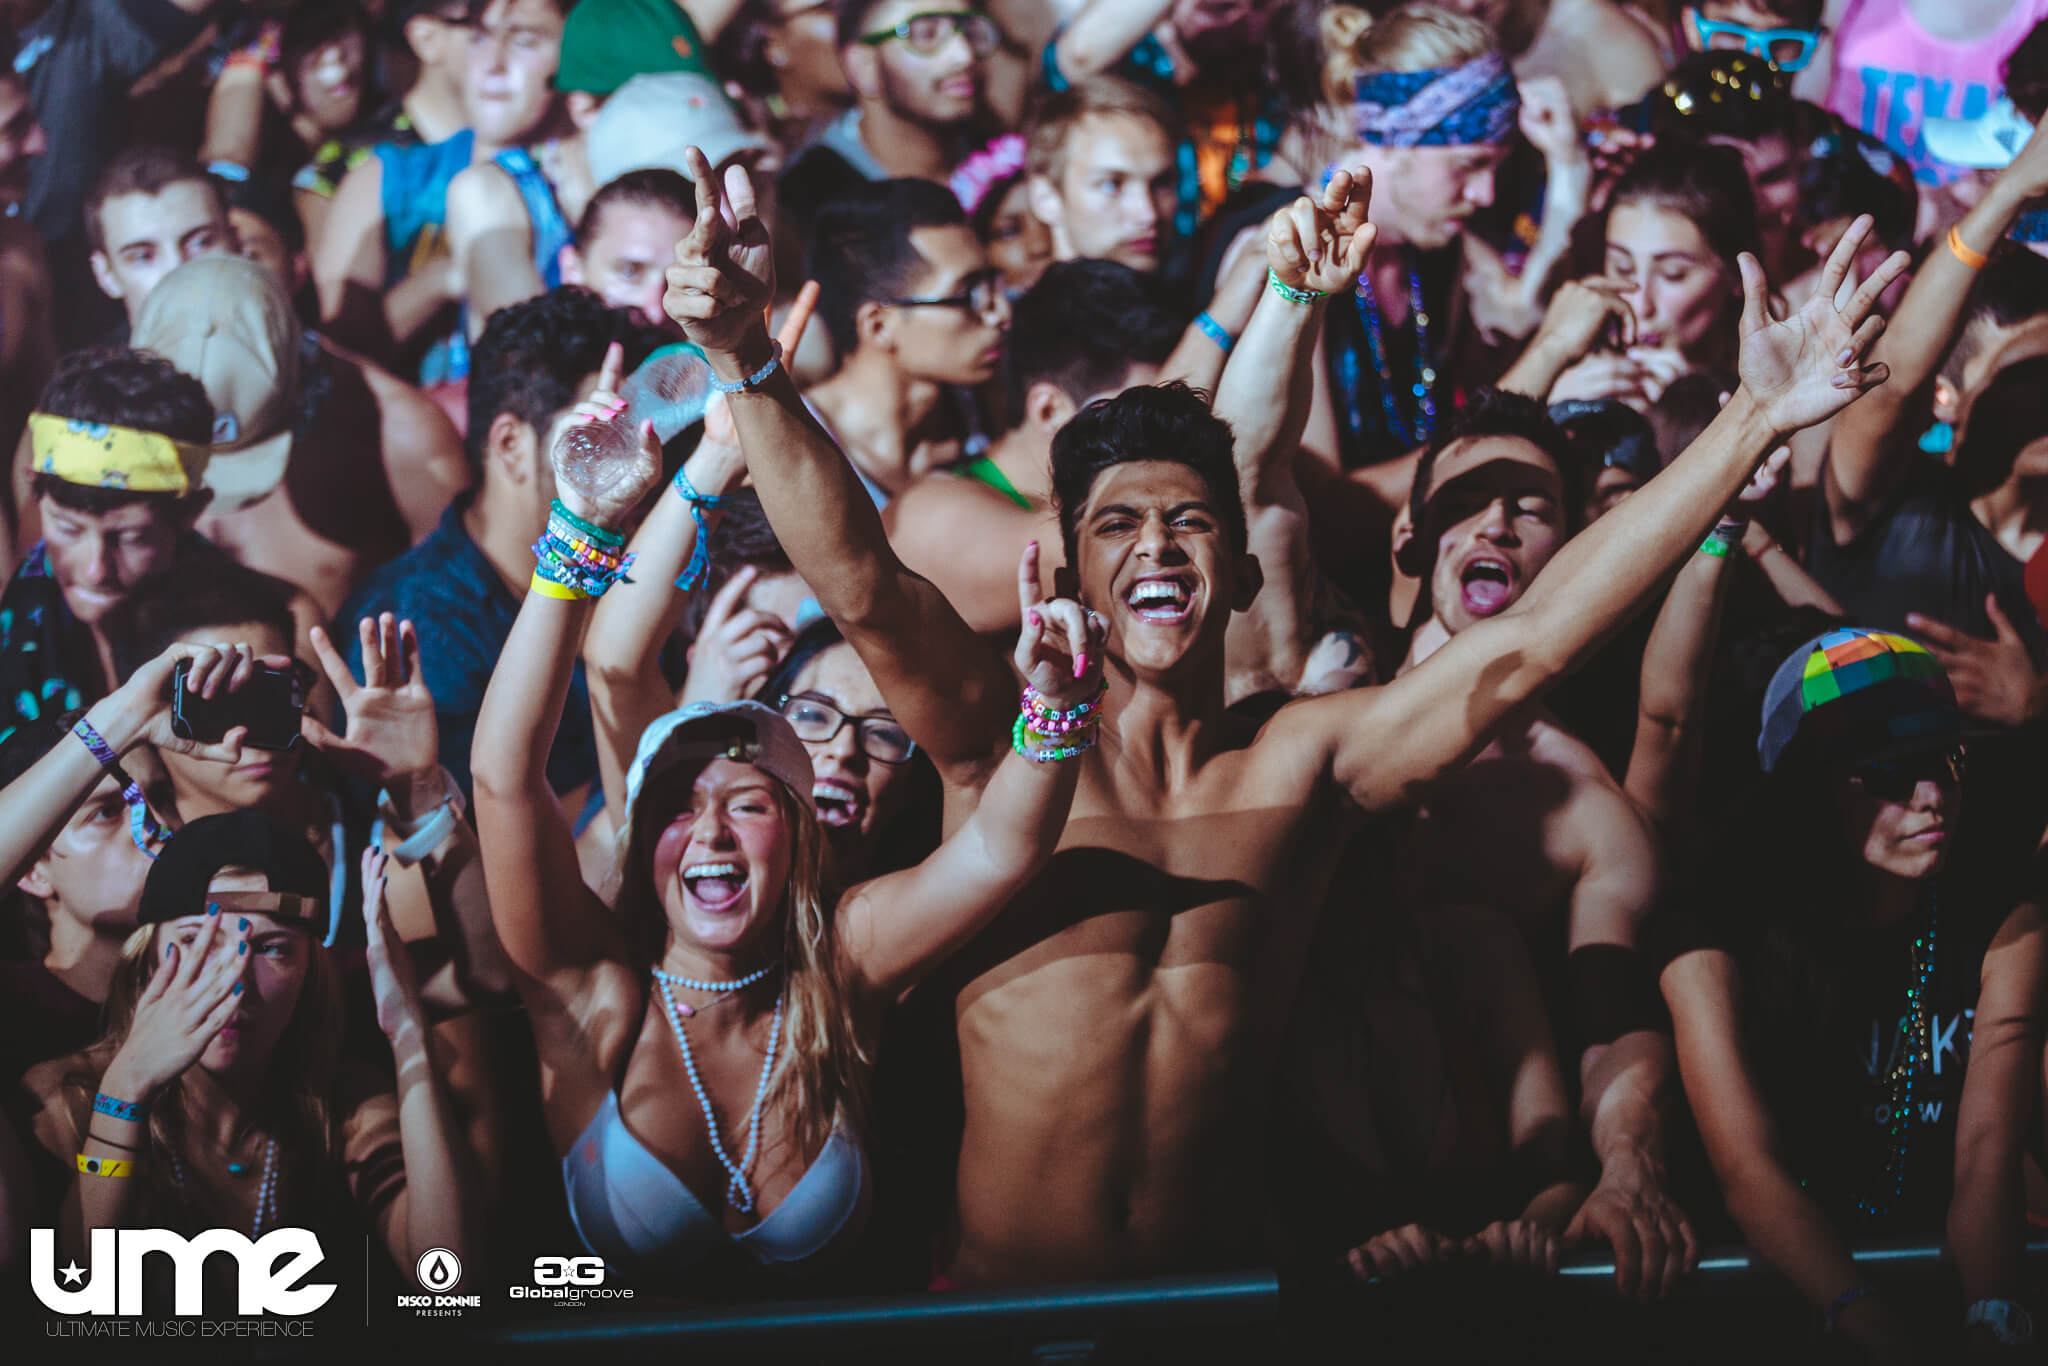 fans in the crowd at ume 2016